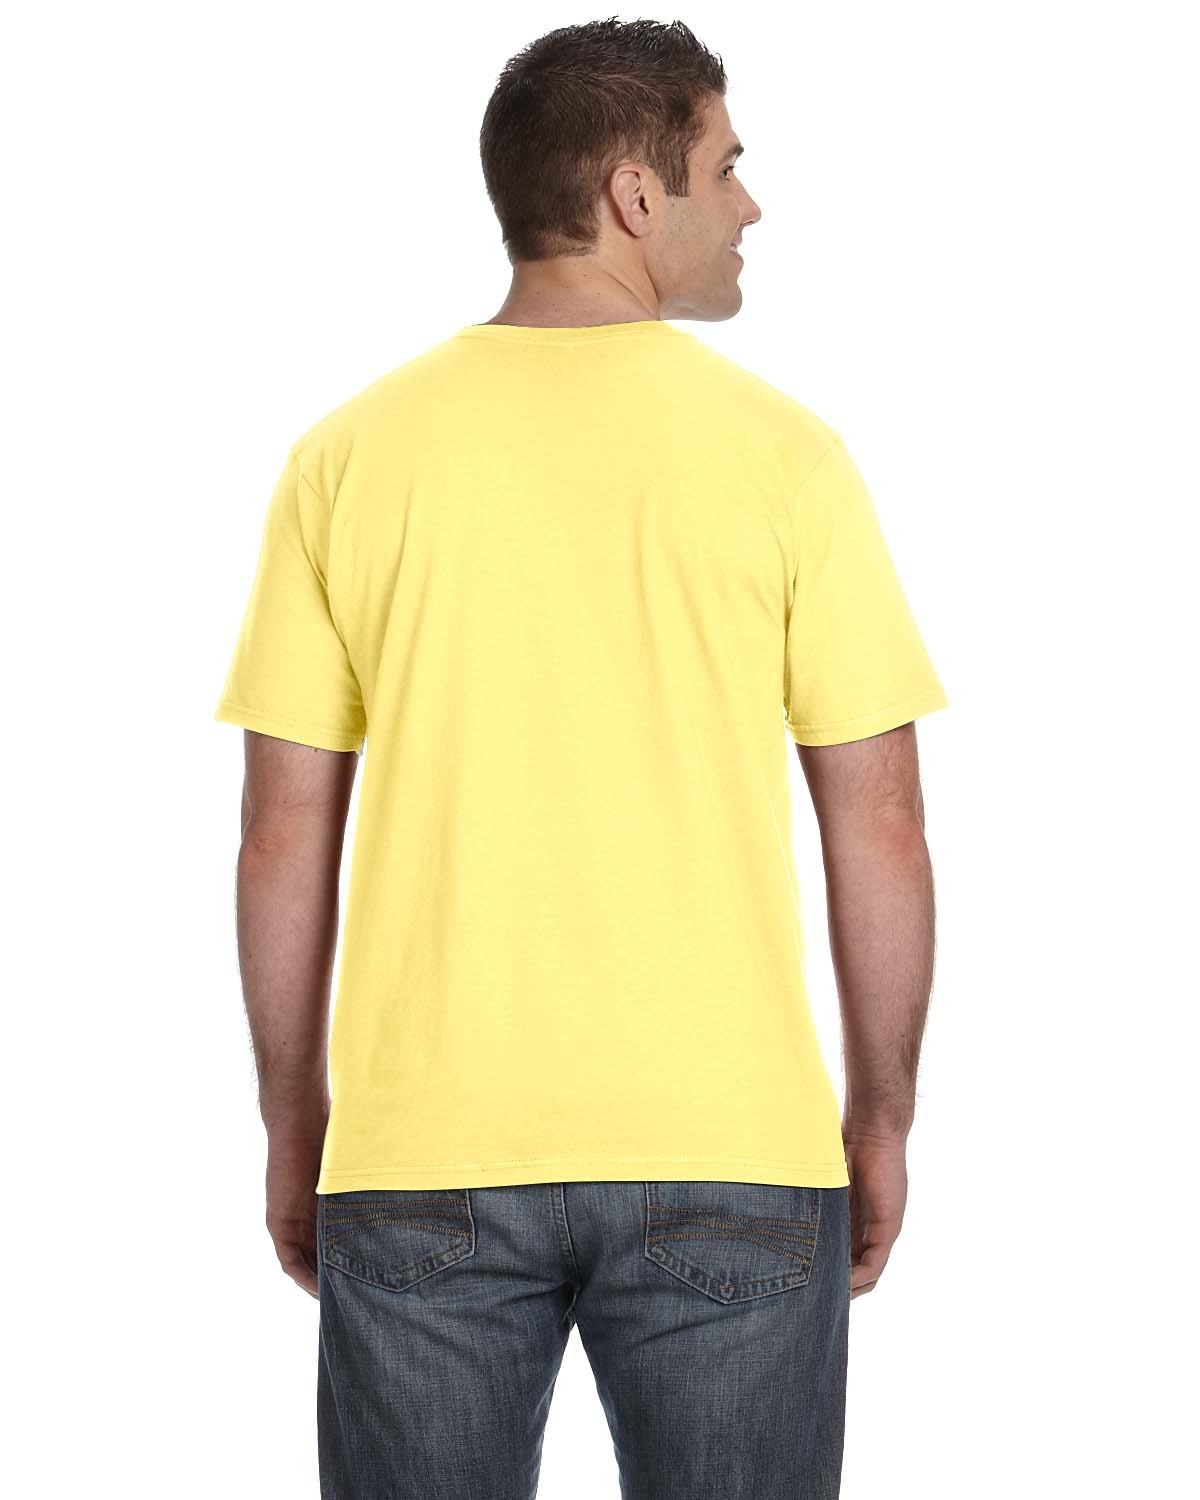 980 Anvil SPRING YELLOW